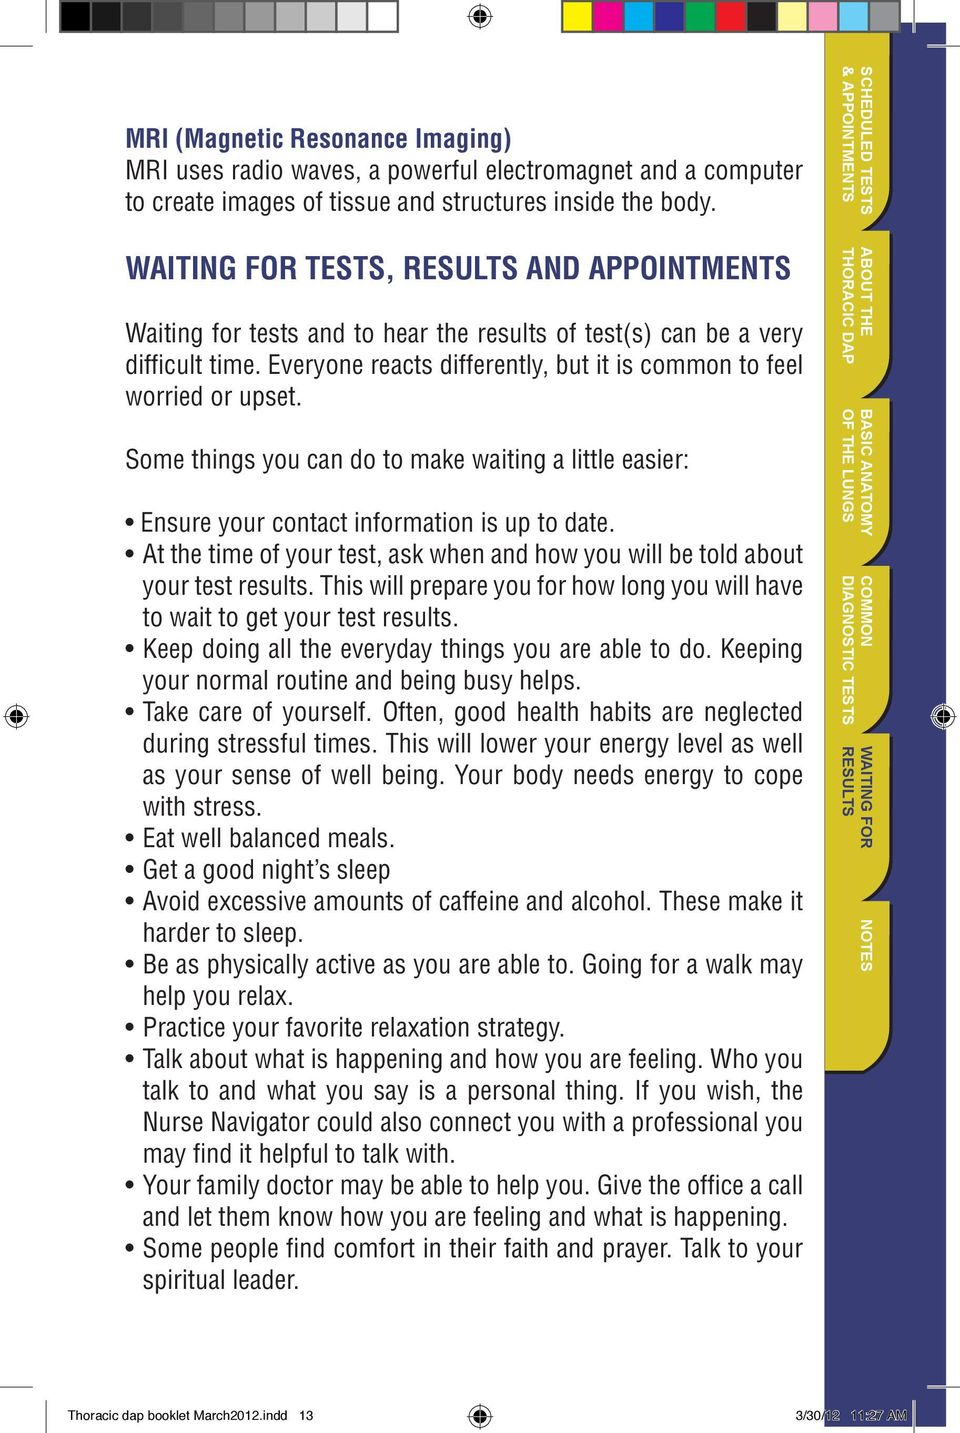 Some things you can do to make waiting a little easier: Ensure your contact information is up to date. At the time of your test, ask when and how you will be told about your test results.